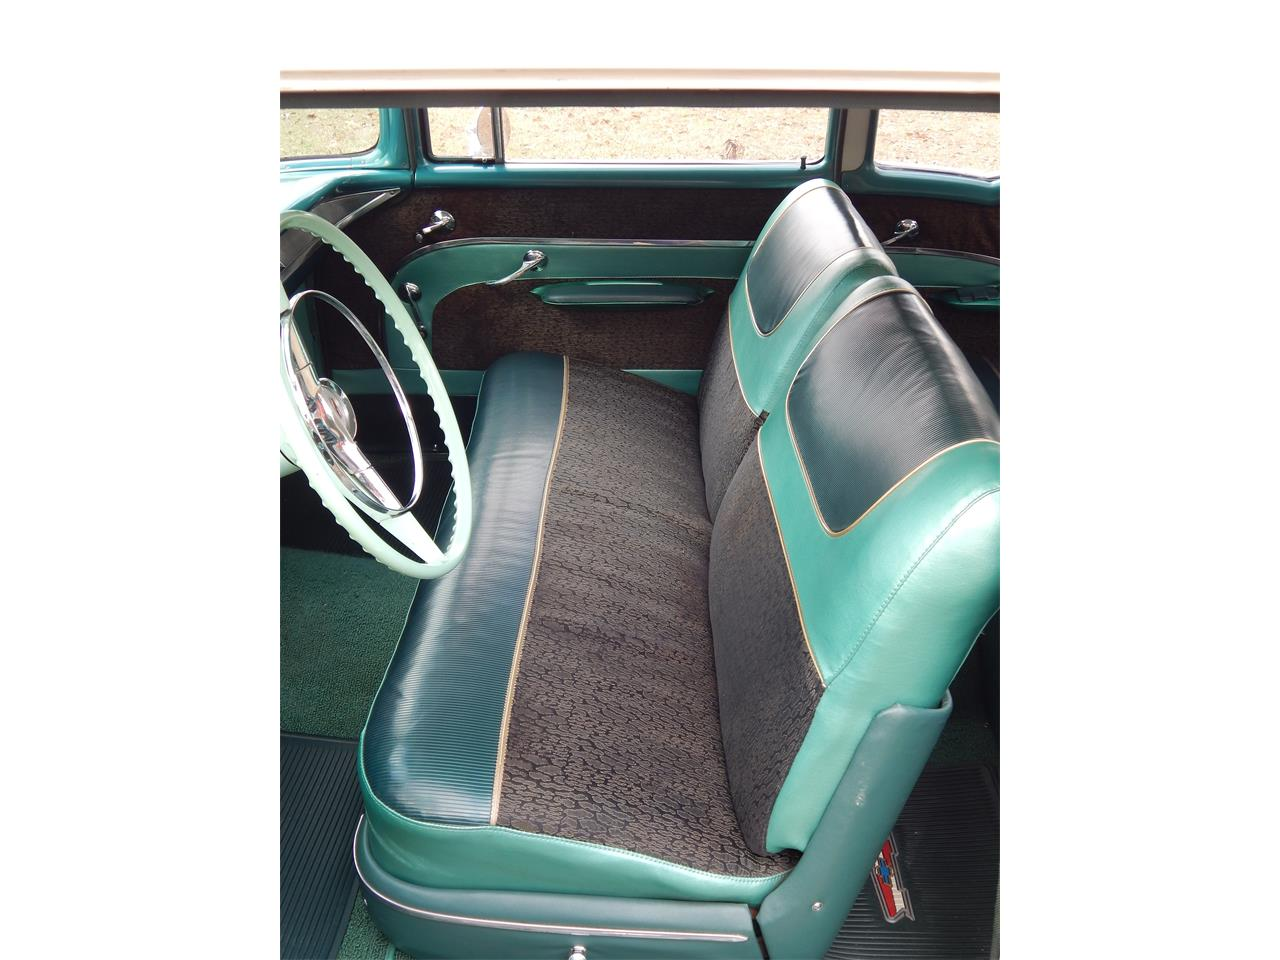 1957 Chevrolet Bel Air for sale in Online, Online Auction – photo 10